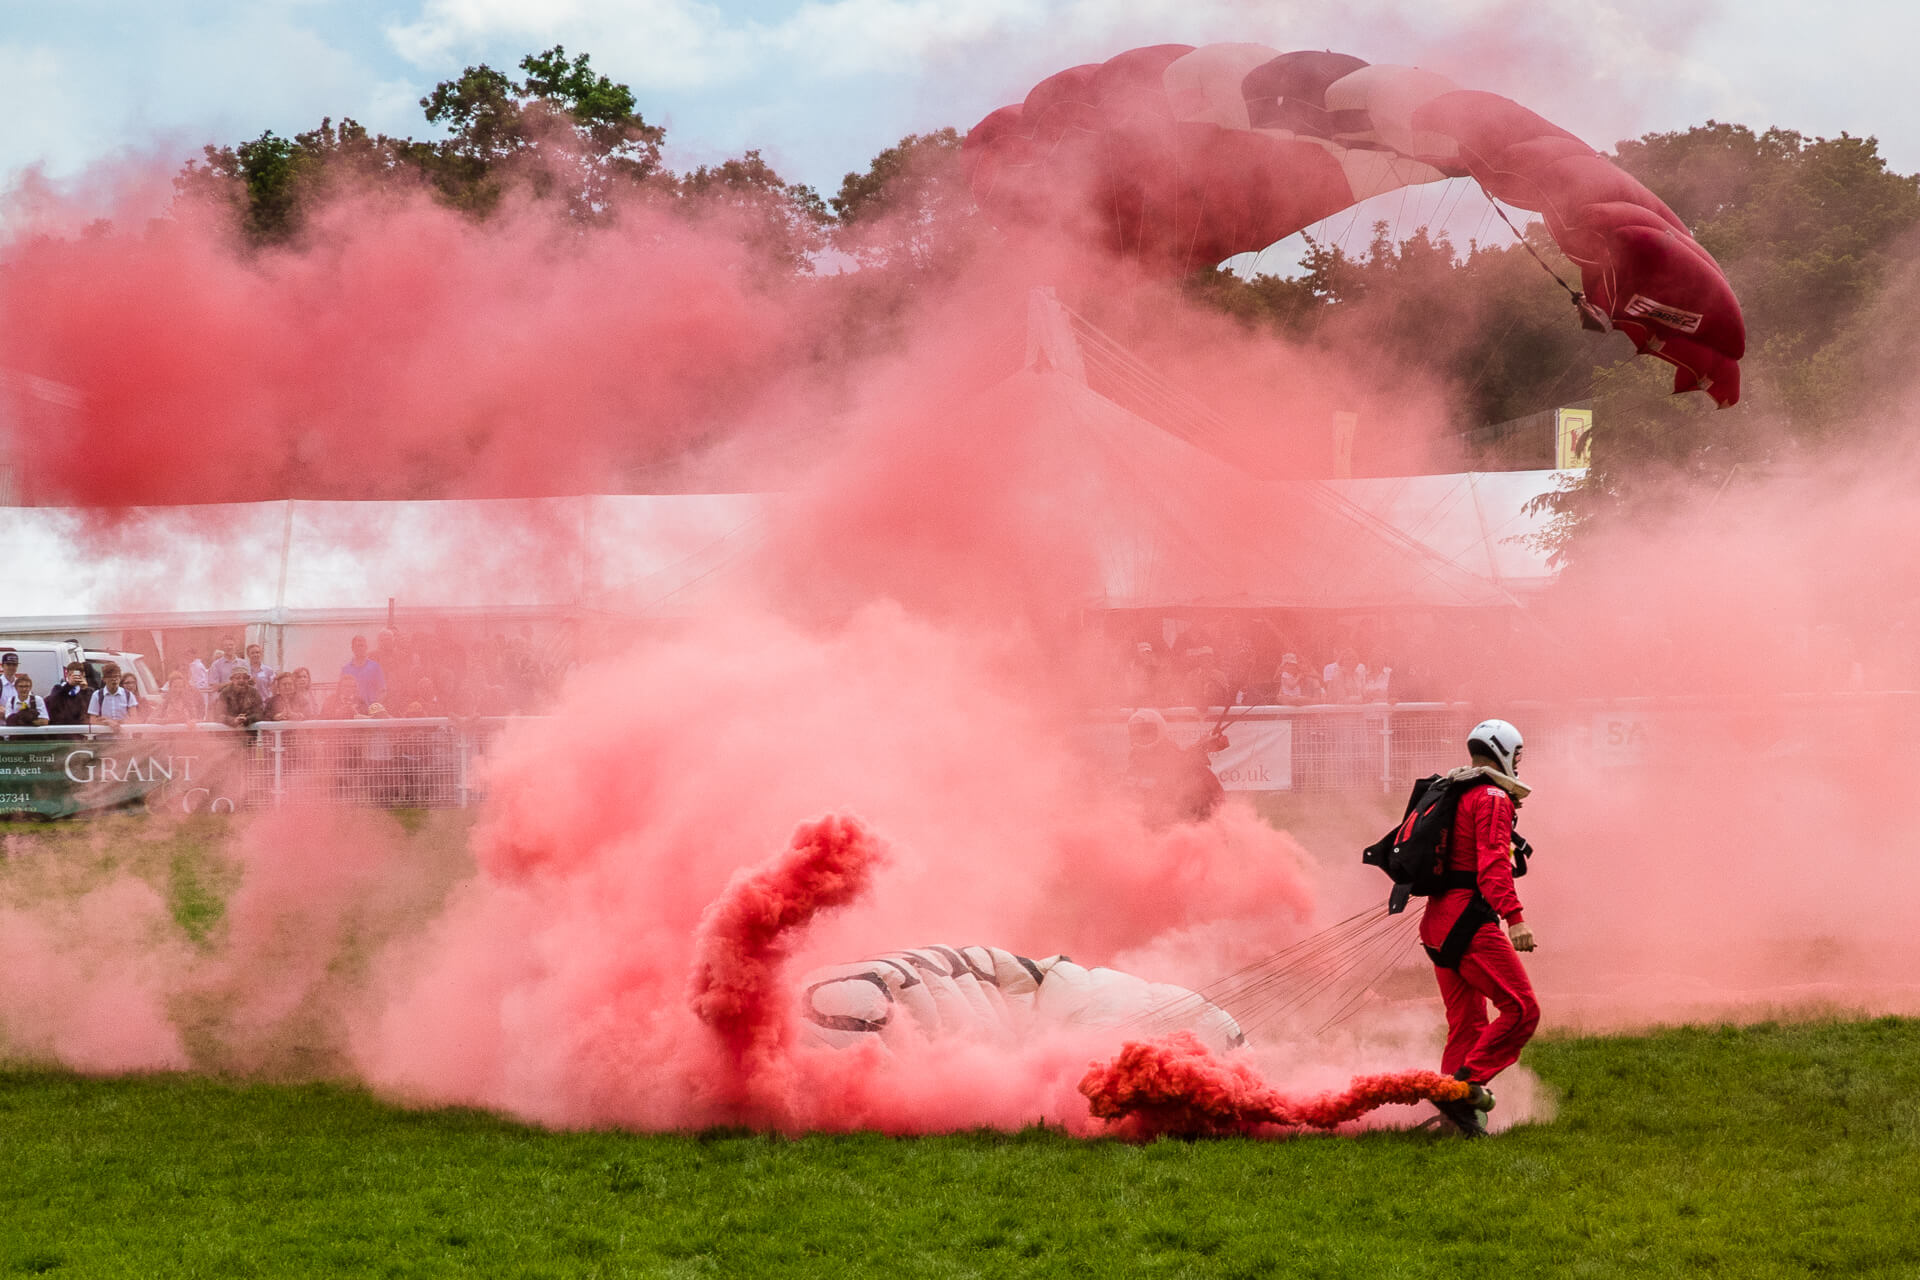 A colour image of 2 members of the Red Devils Parachute Team, the display team of The Parachute Regiment taken just after they landed at The 3 Counties Show, Malvern in 2017. The smoke canister attached to the right ankle of the nearest man still emits red smoke which billows around. The rear man can just be seen through the smoke as he tries to collapse his still inflated canopy.